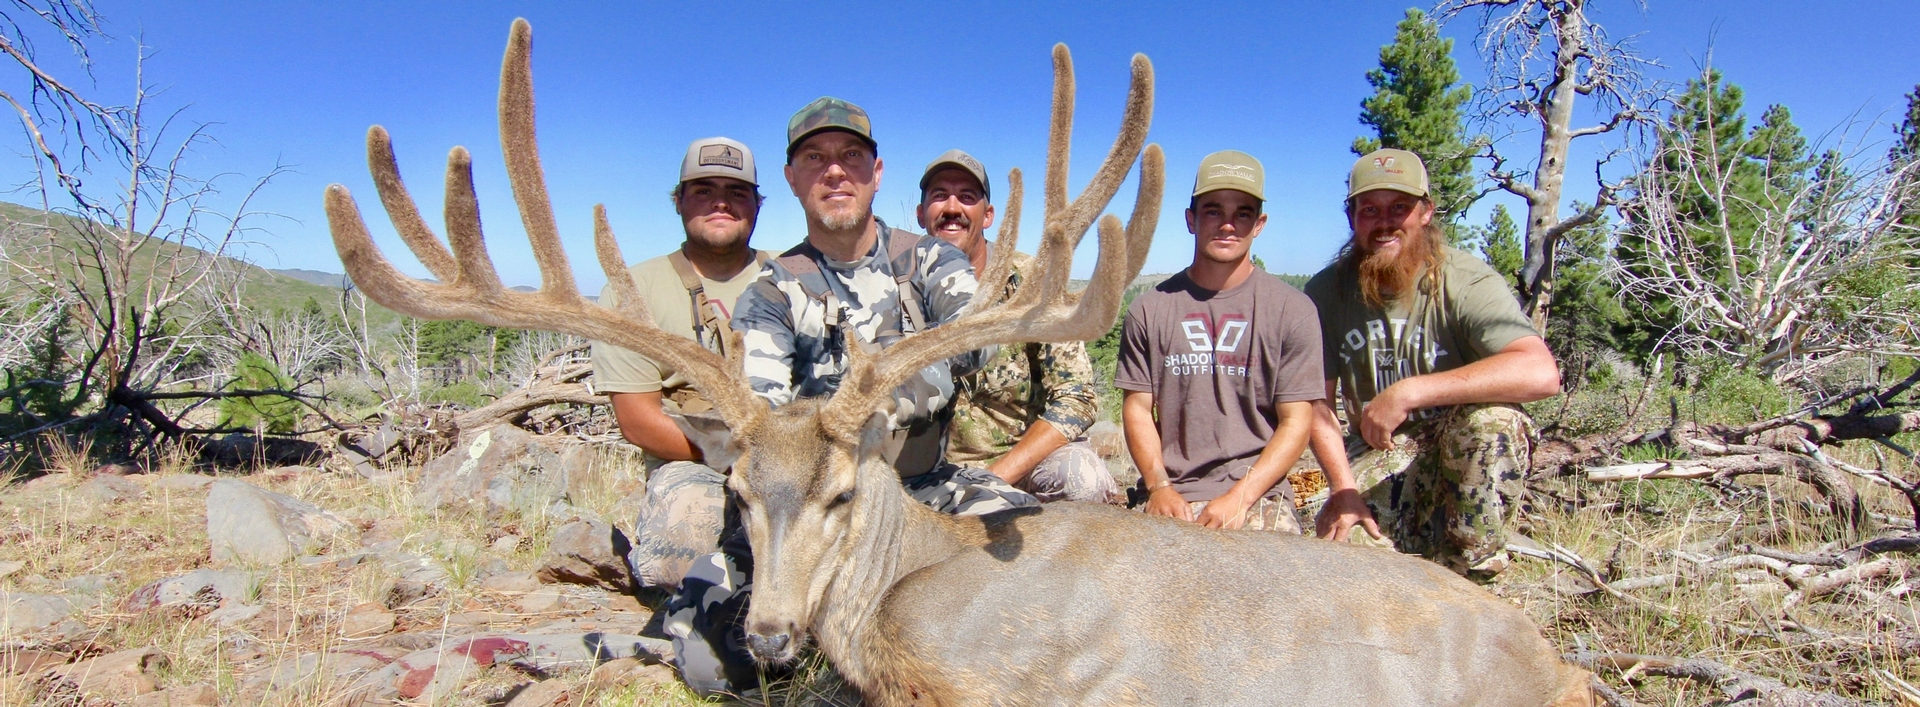 Shadow Valley Outfitters Arizona Trophy Hunts